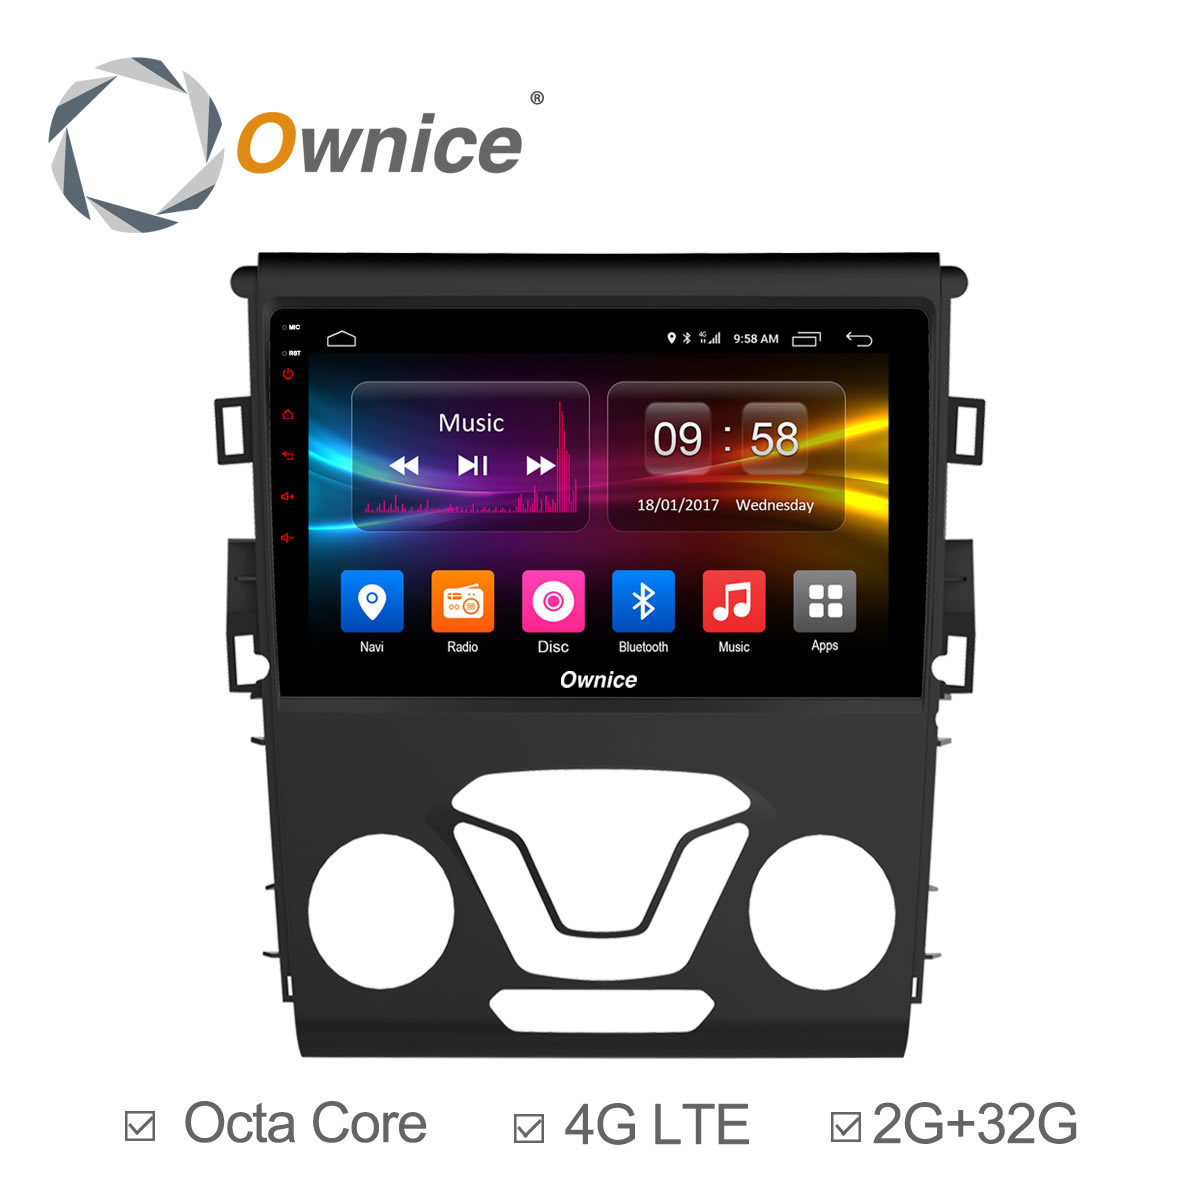 Ownice C500+ Octa core Android 6.0 2GB RAM 32G ROM CAR GPS DVD player FOR FORD MONDEO 2013-2017 car audio stereo Multimedia GPS